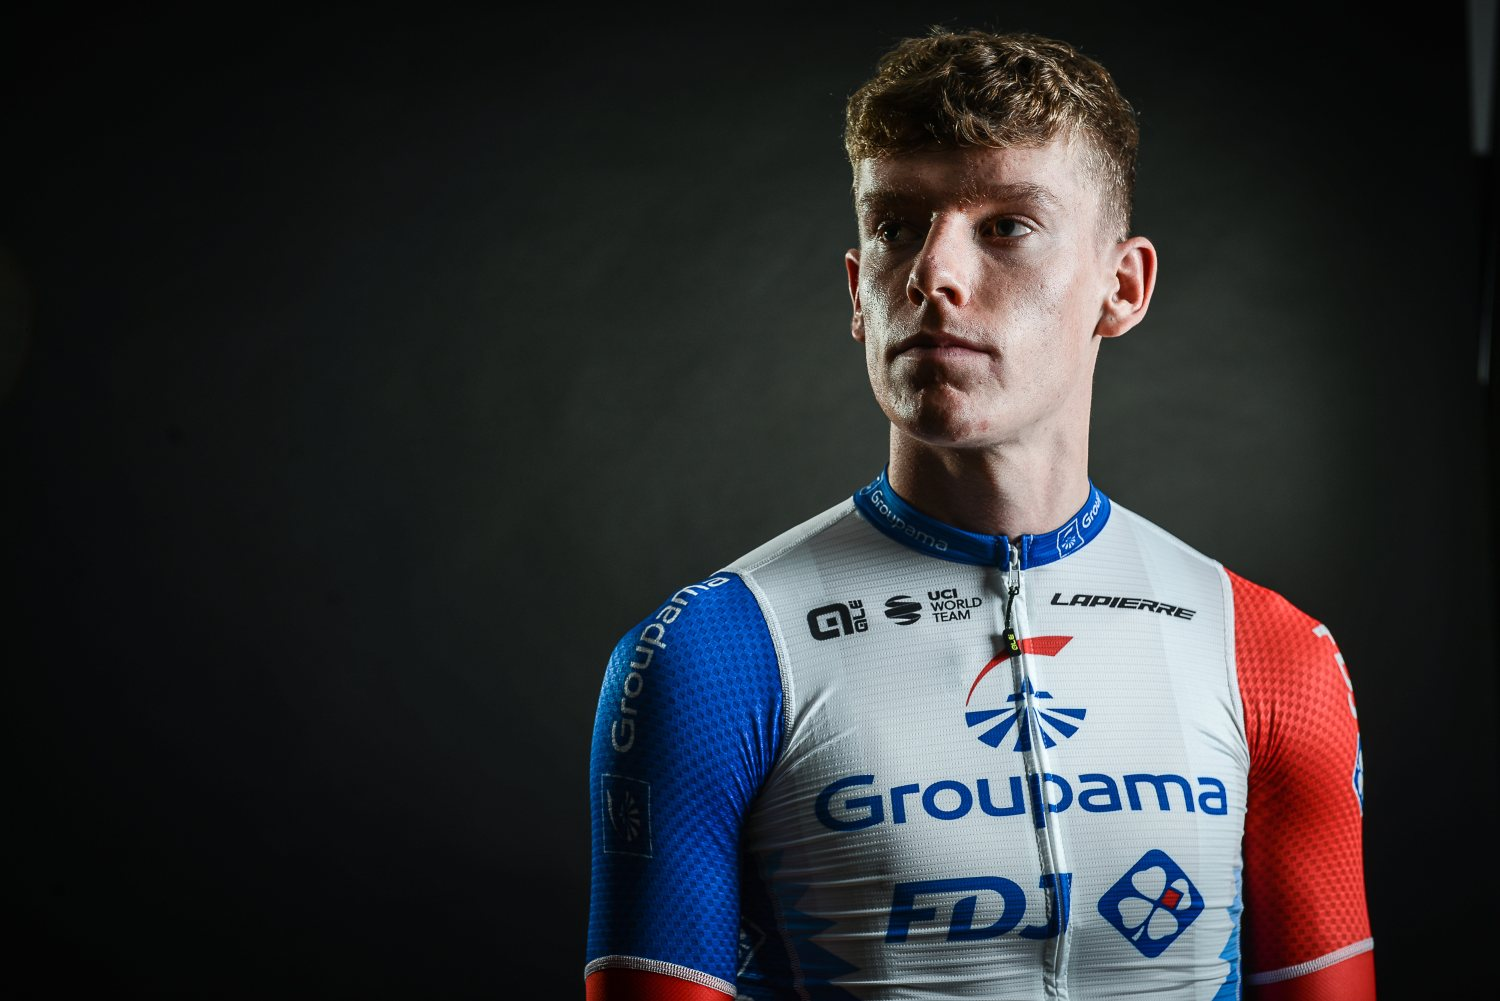 Jake Stewart (Groupama FDJ)